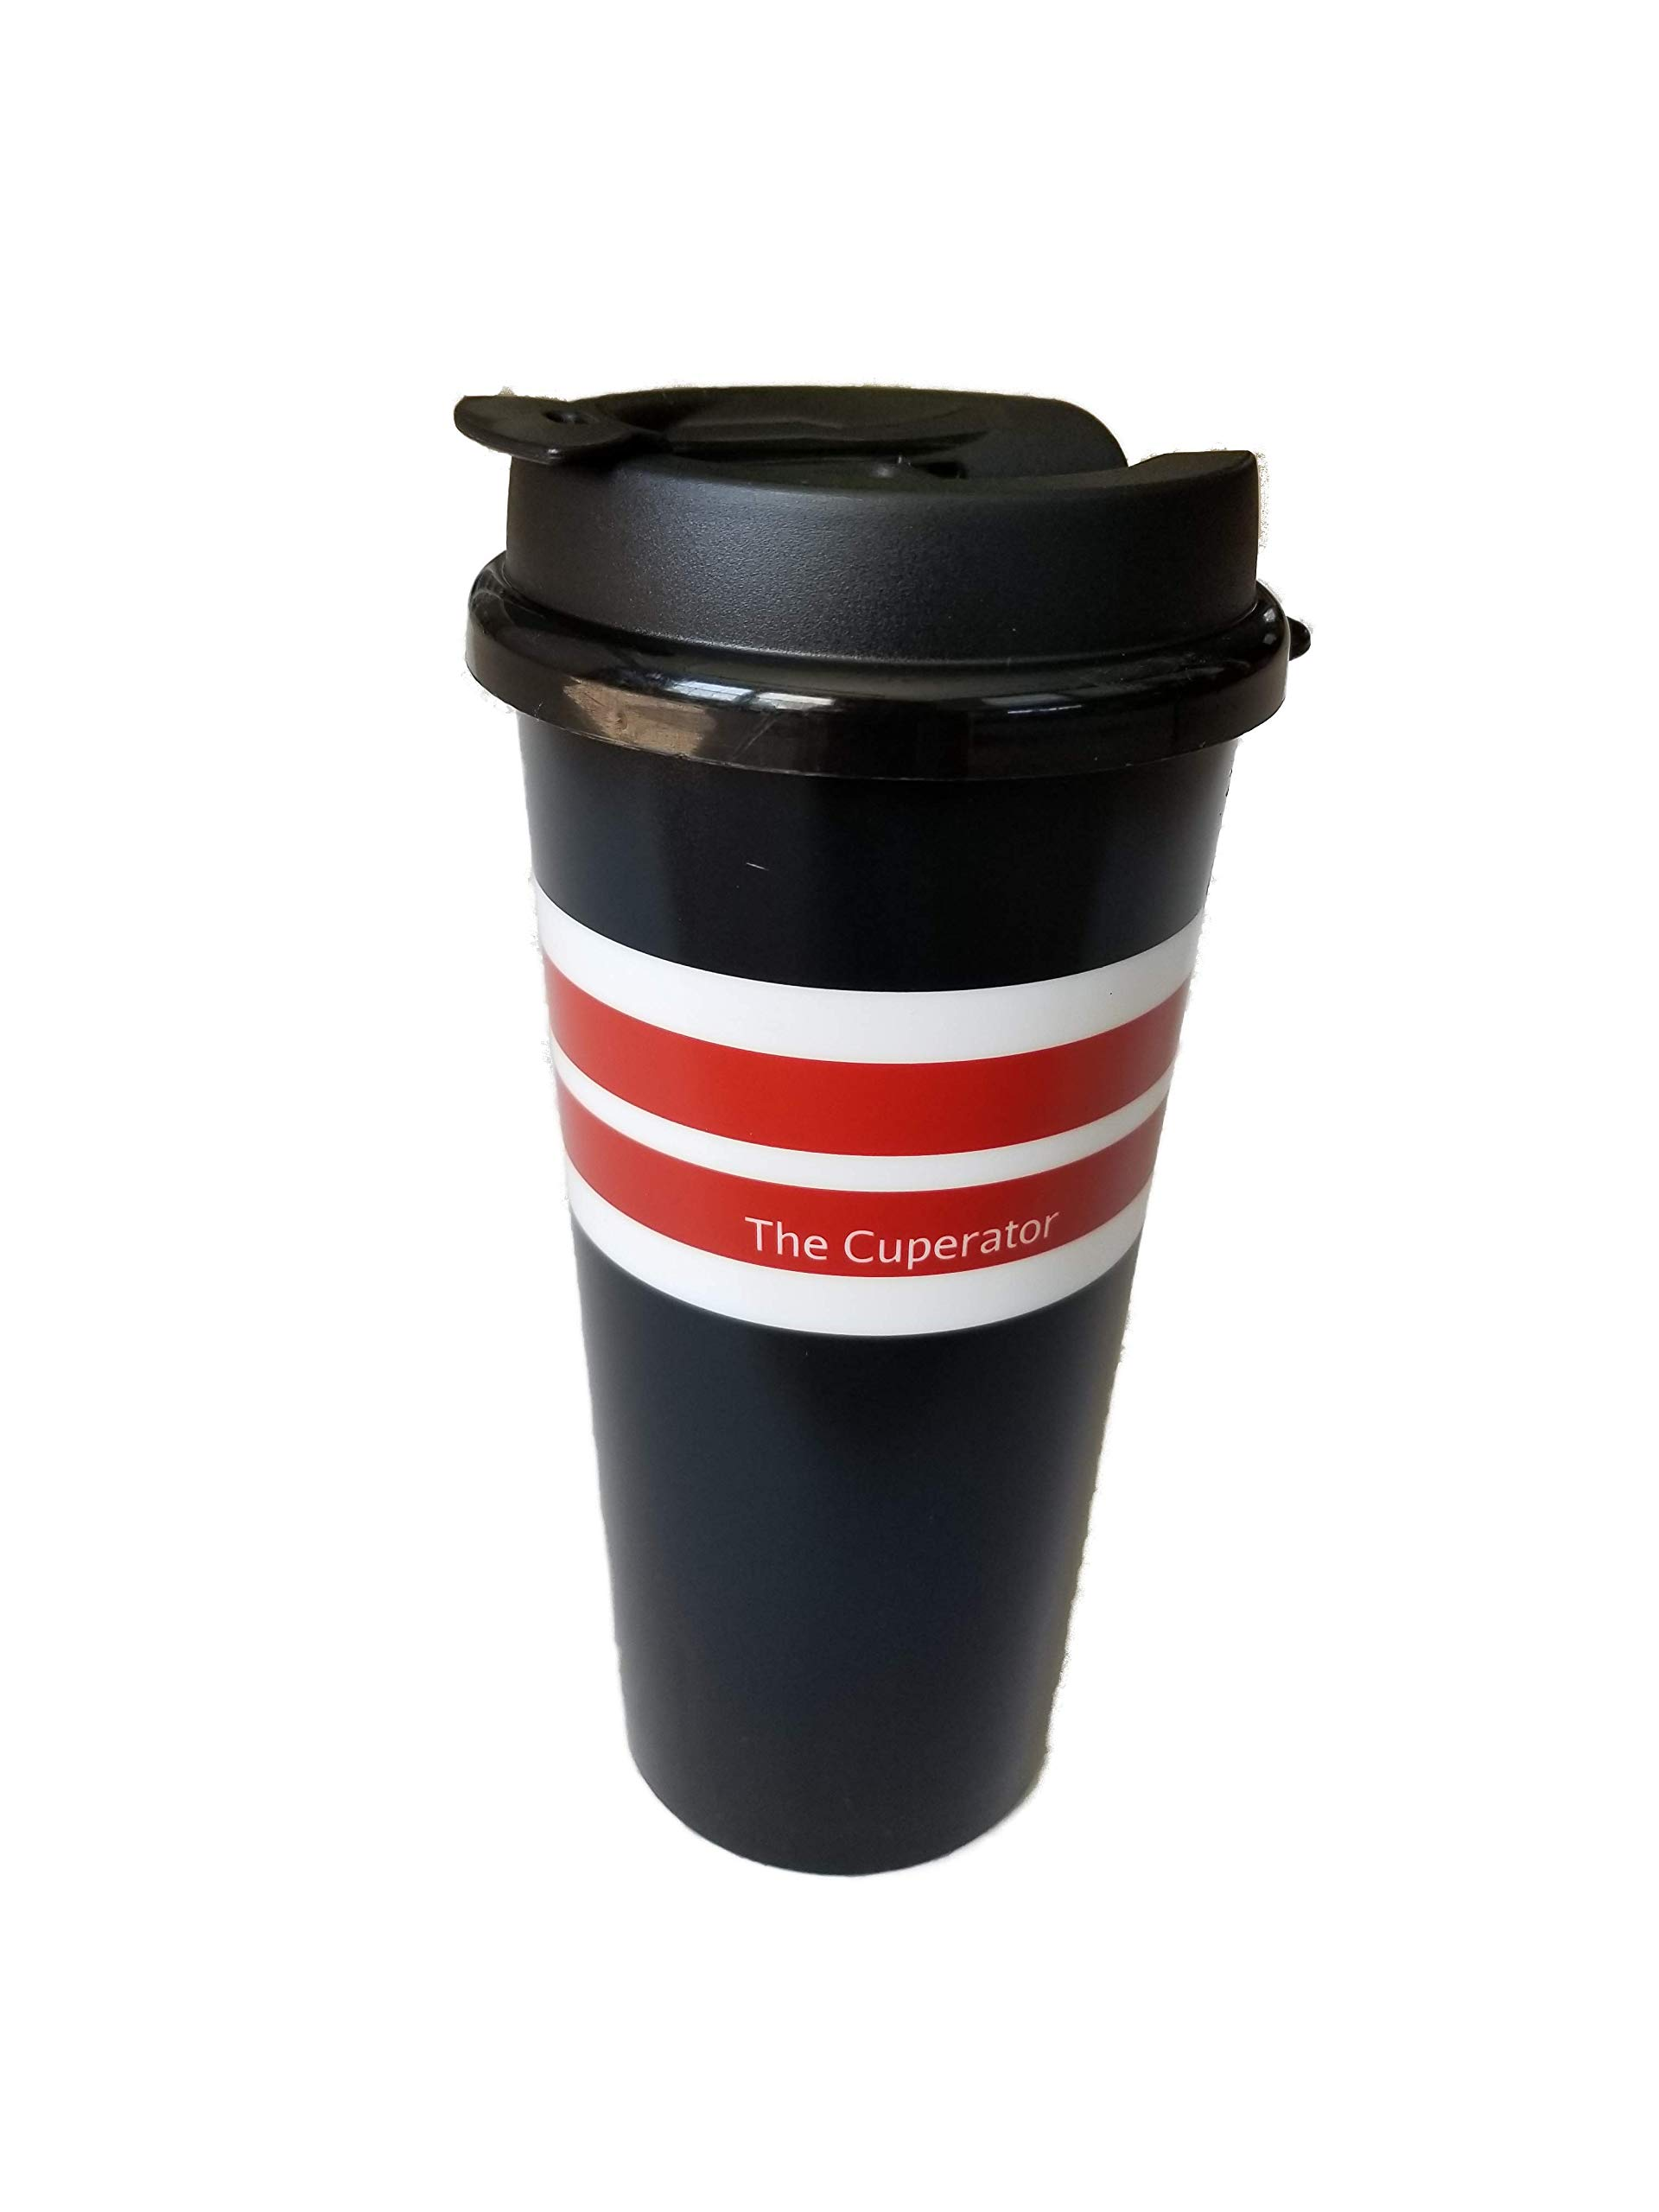 Travel Mug - 16 Oz Insulated Reusable Drink Cup by OH 4 Travel Cup